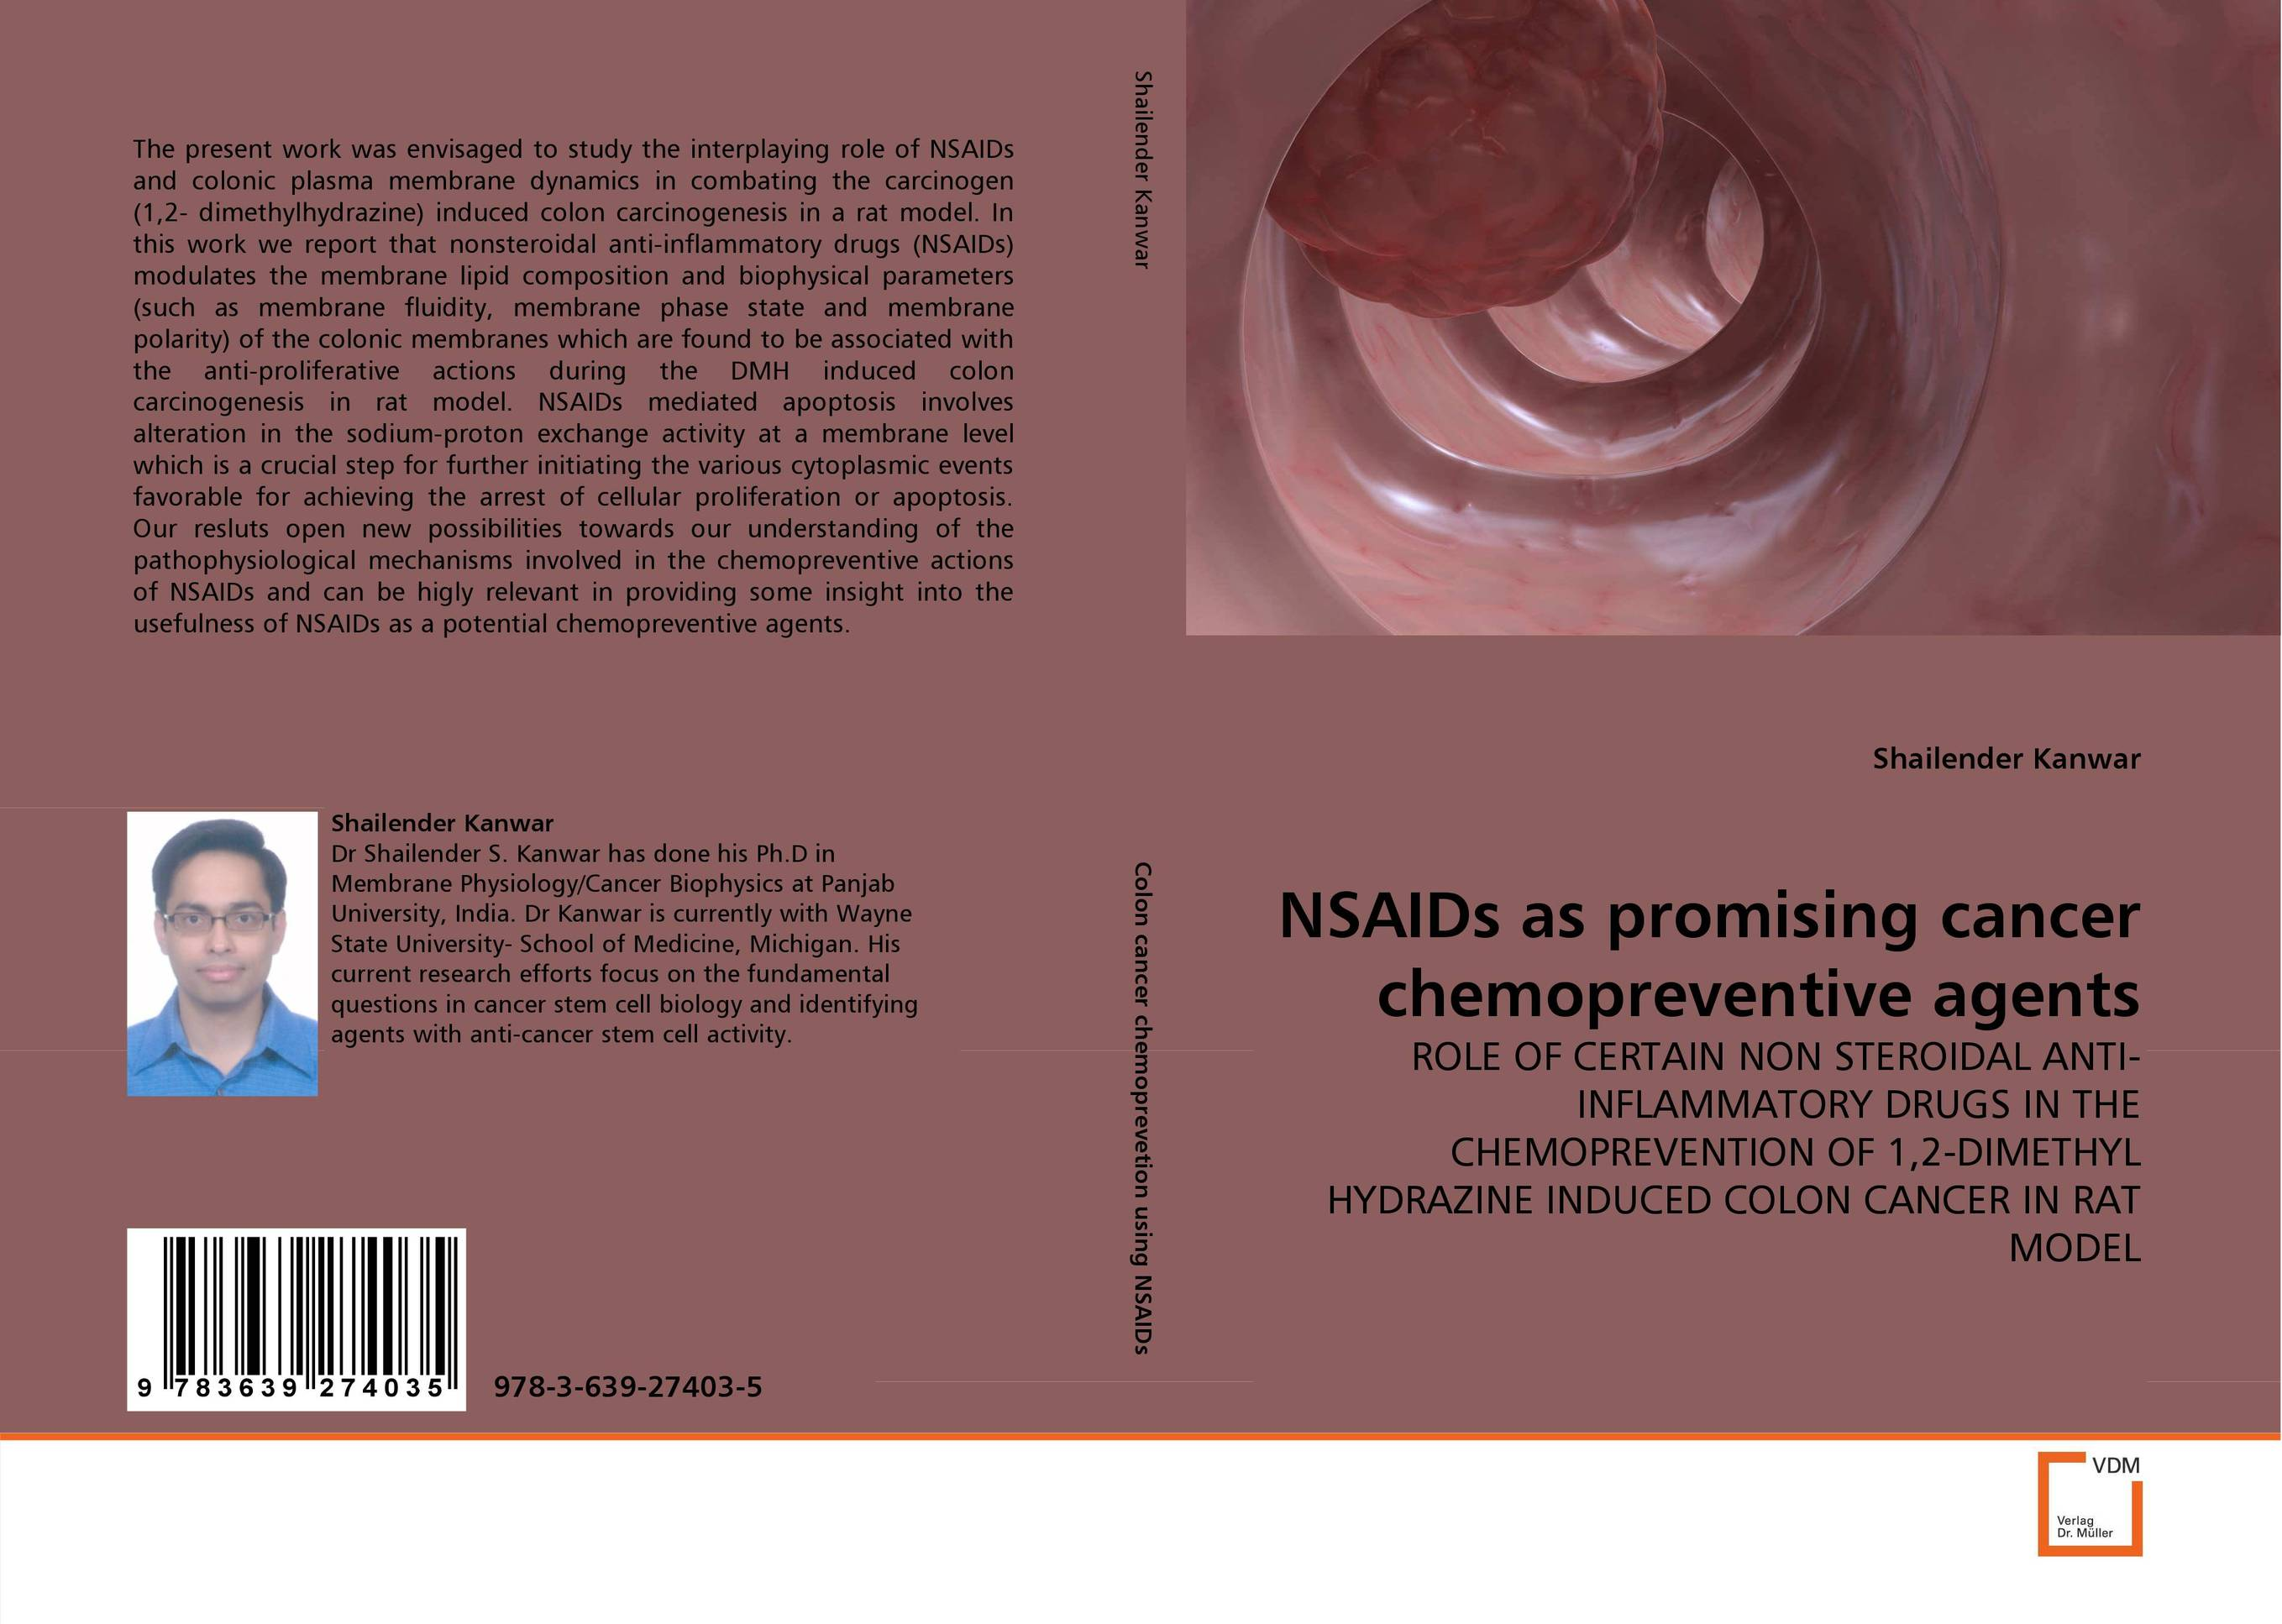 NSAIDs as promising cancer chemopreventive agents arvinder pal singh batra jeewandeep kaur and anil kumar pandey factors associated with breast cancer in amritsar region